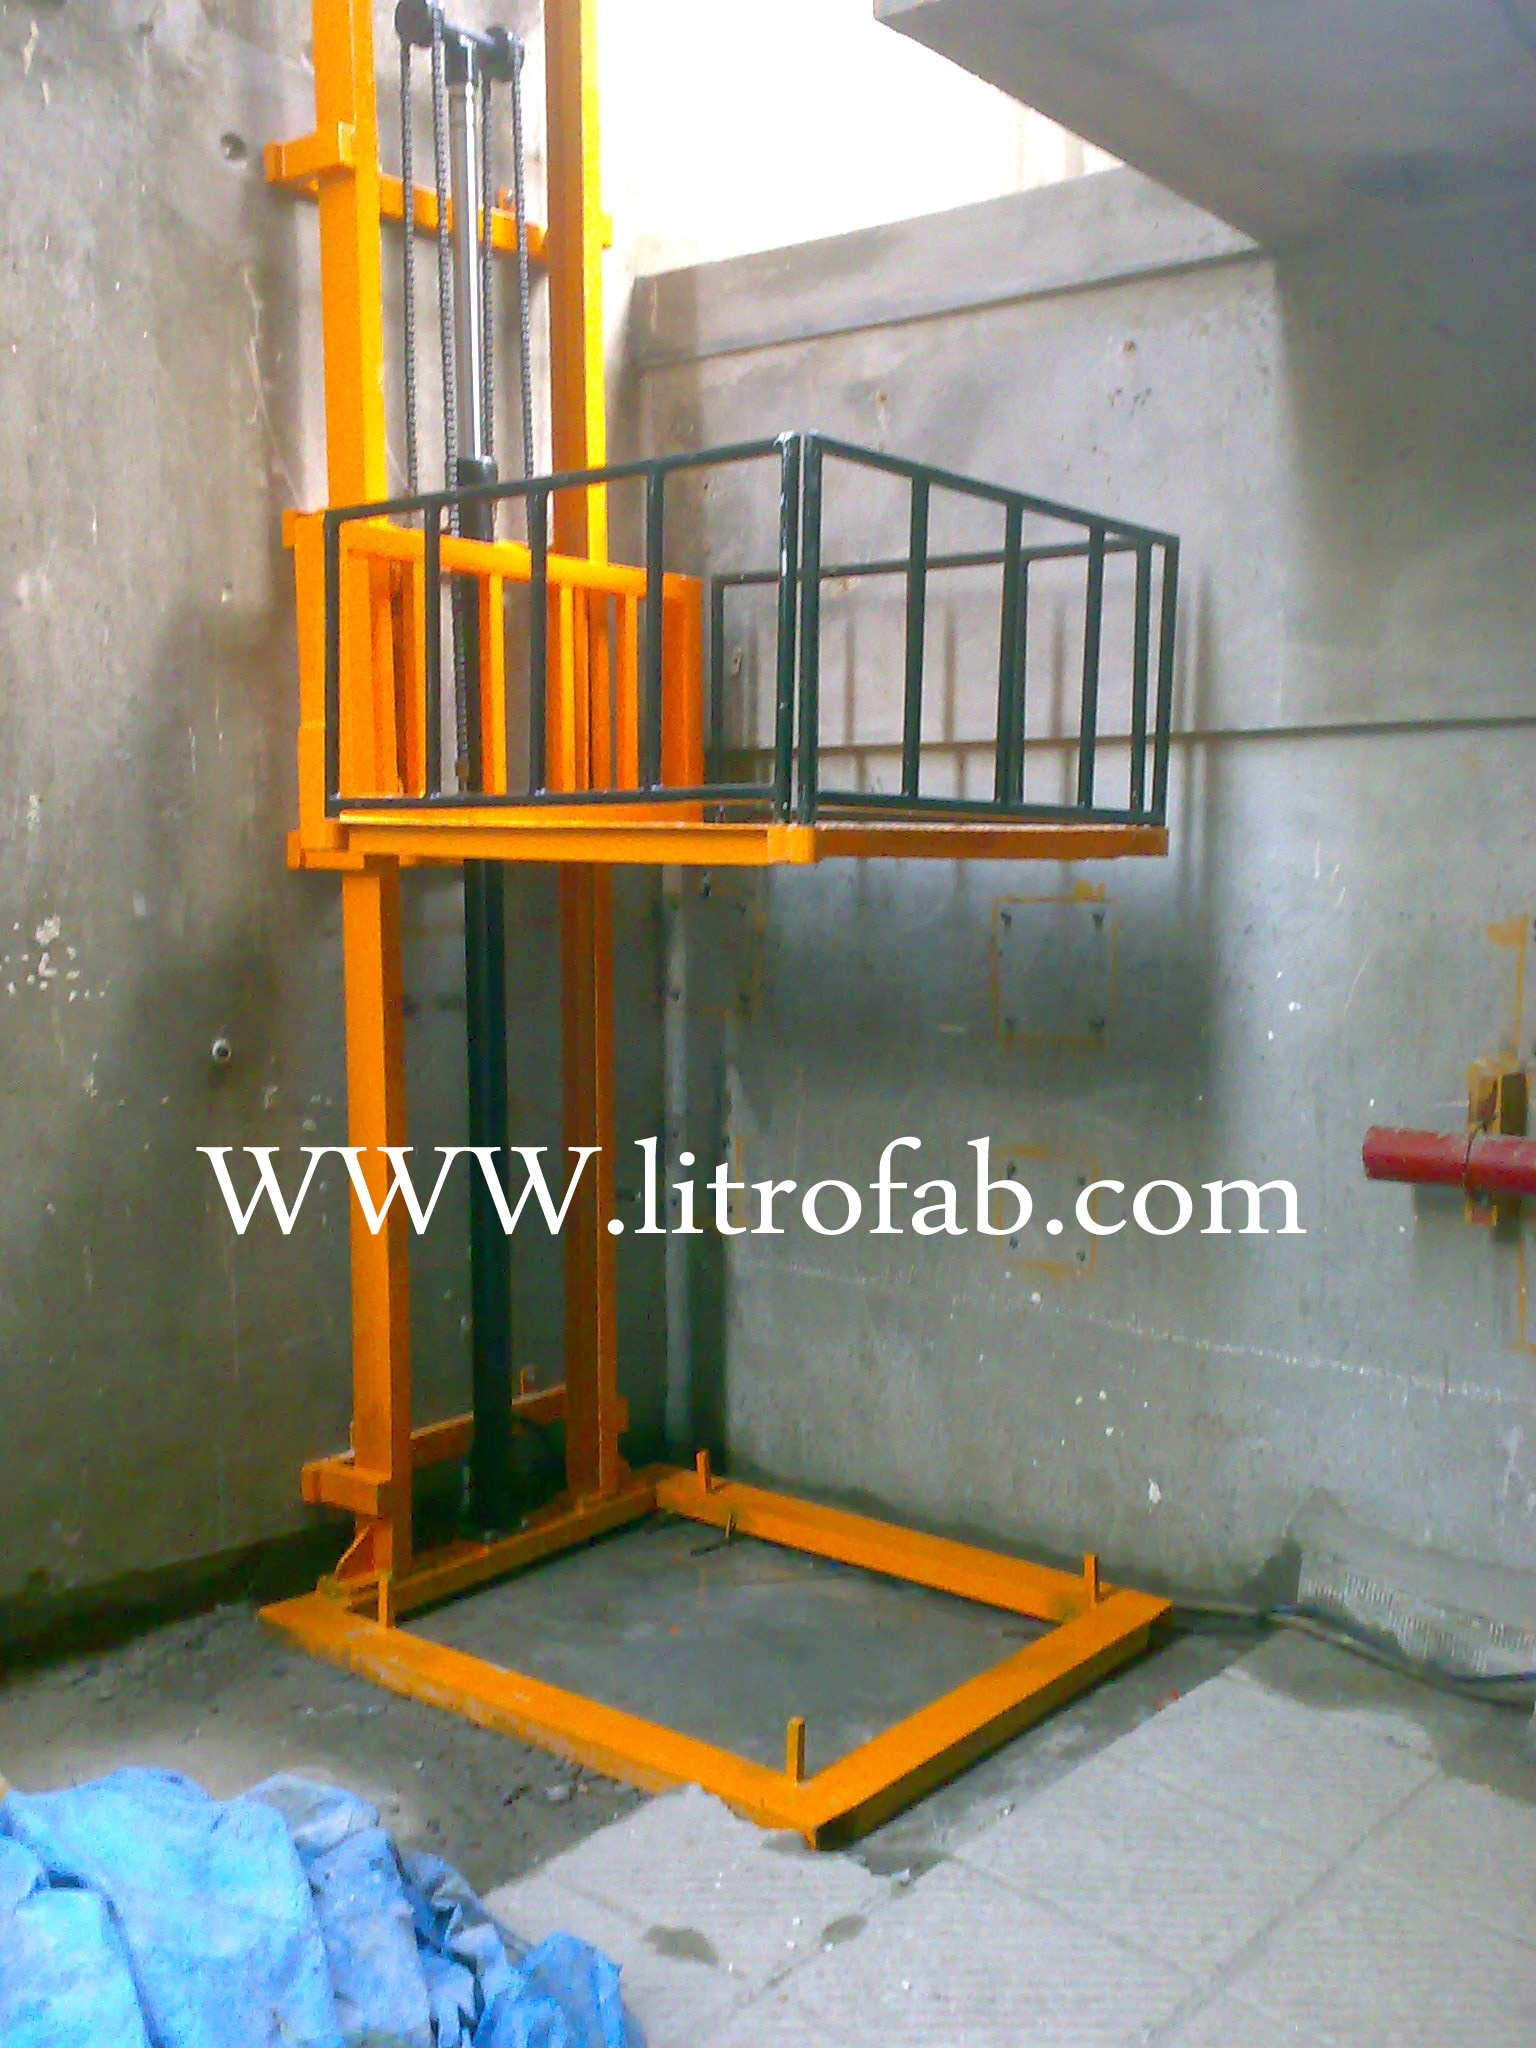 Hydraulic Platform Lift Heavy Load Cary One floor to another Capacity 250 to 3000 Kgs Number of floor Customised